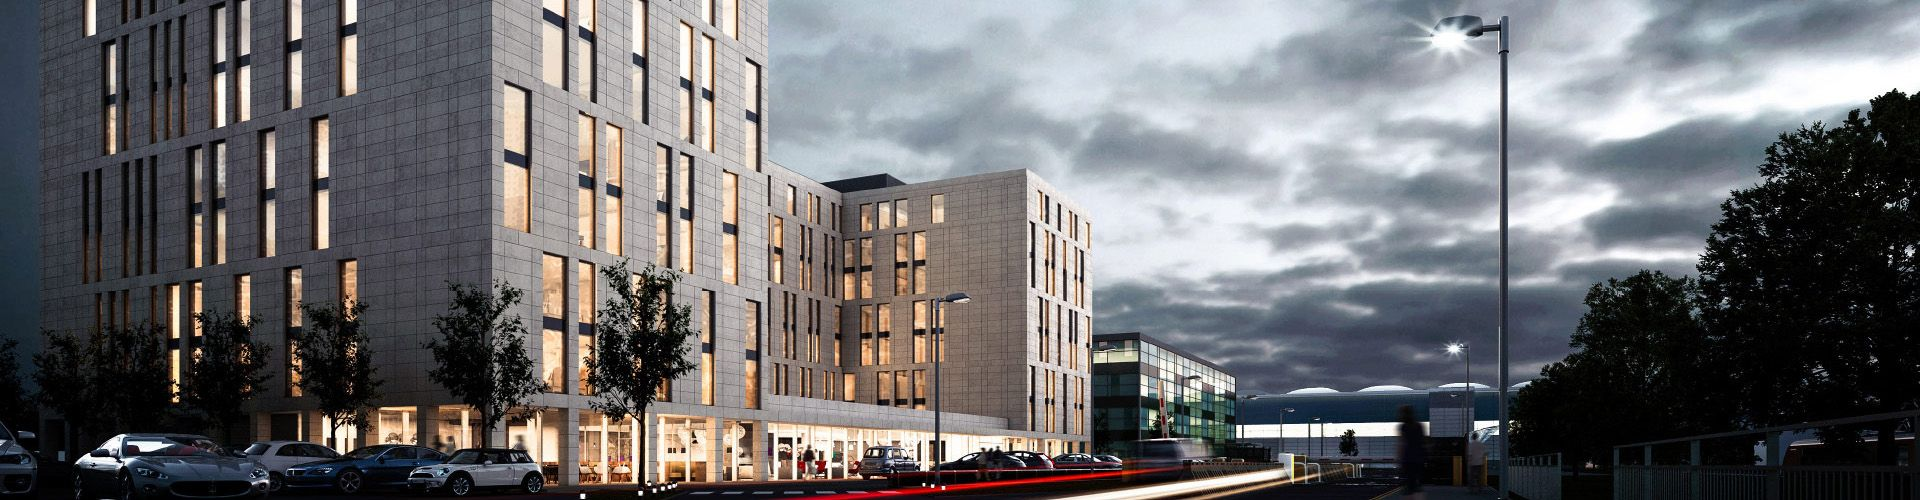 13.02.15_Urban&Civic land hotel development at Stansted airport.jpg